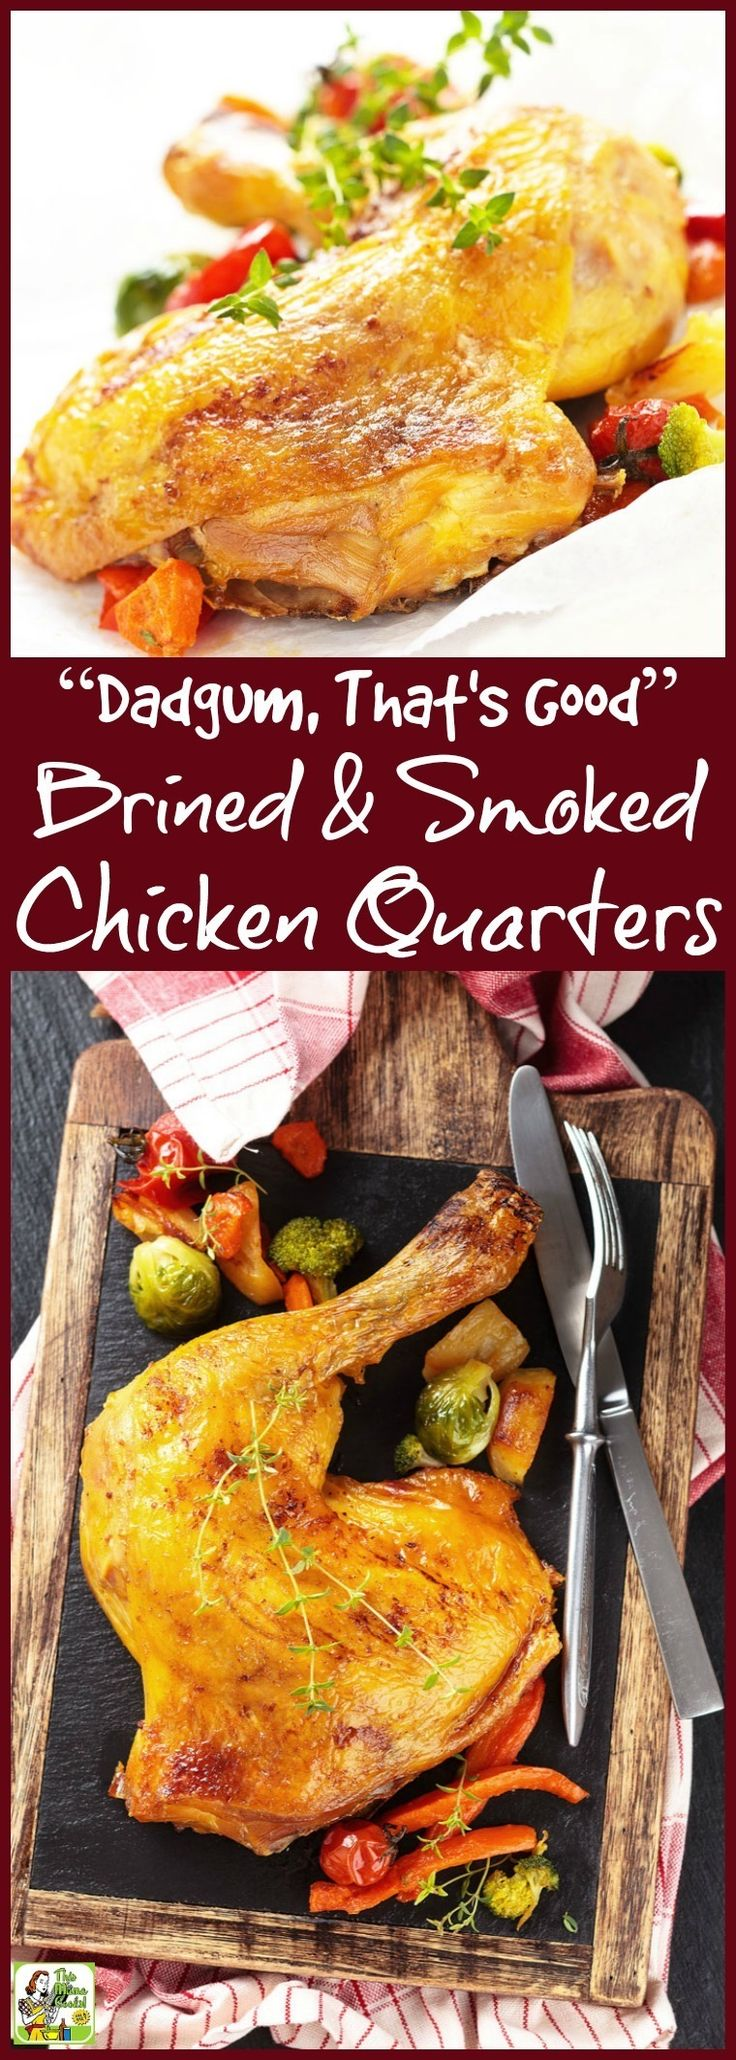 "€�dadgum, That's Good"" Brined & Smoked Chicken Quarters"